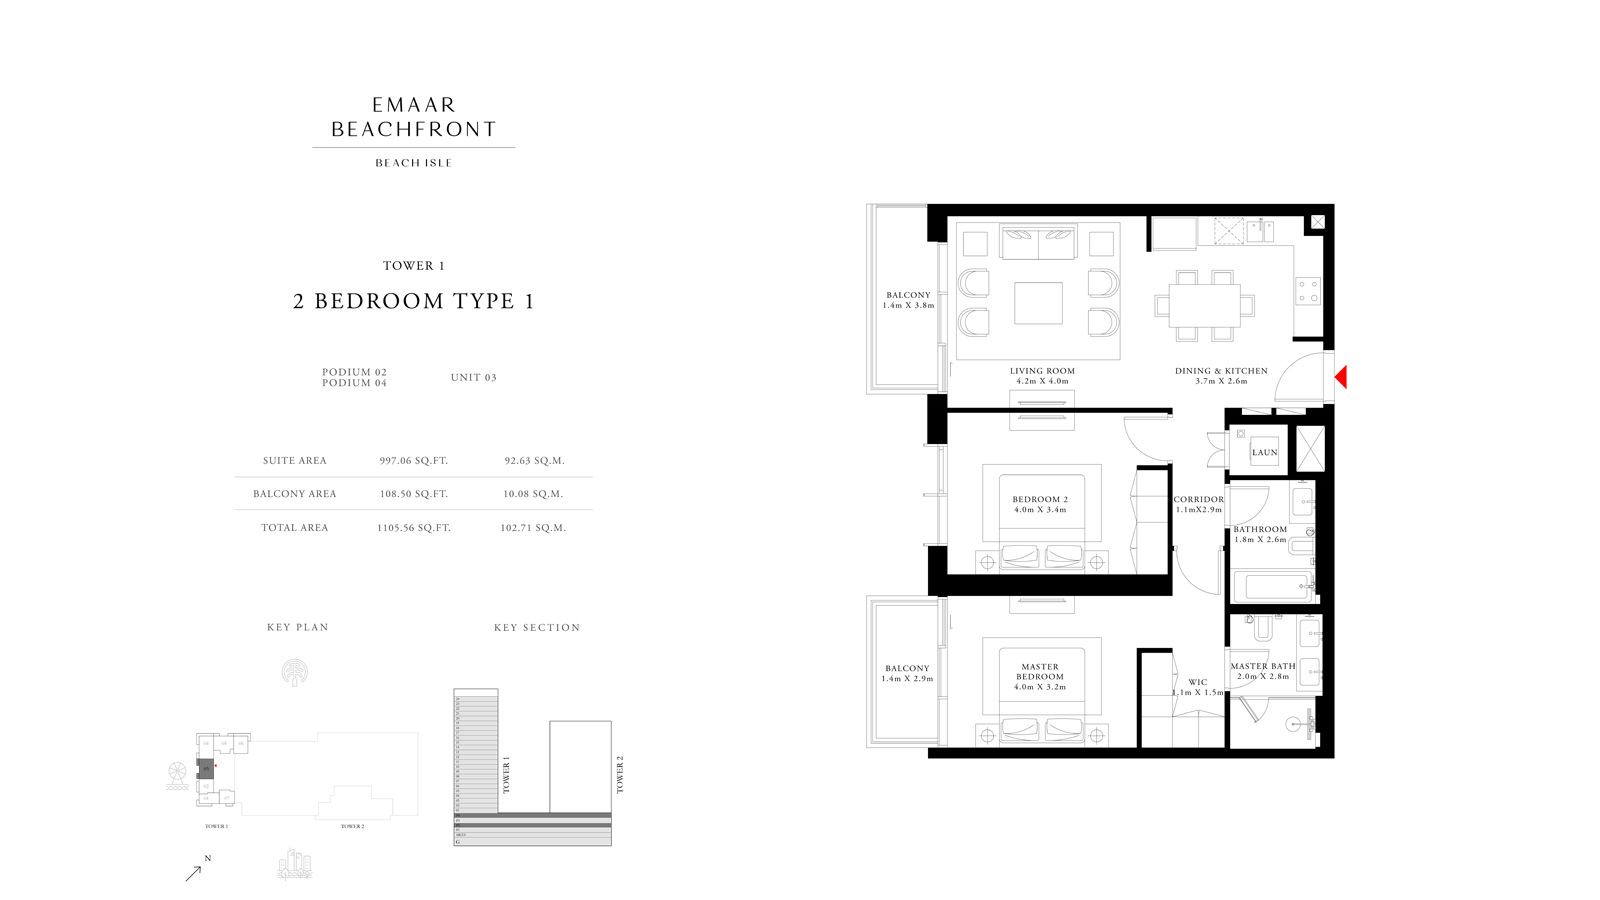 2 Bedroom Type 1 Tower 1, Size 1105    sq. ft.